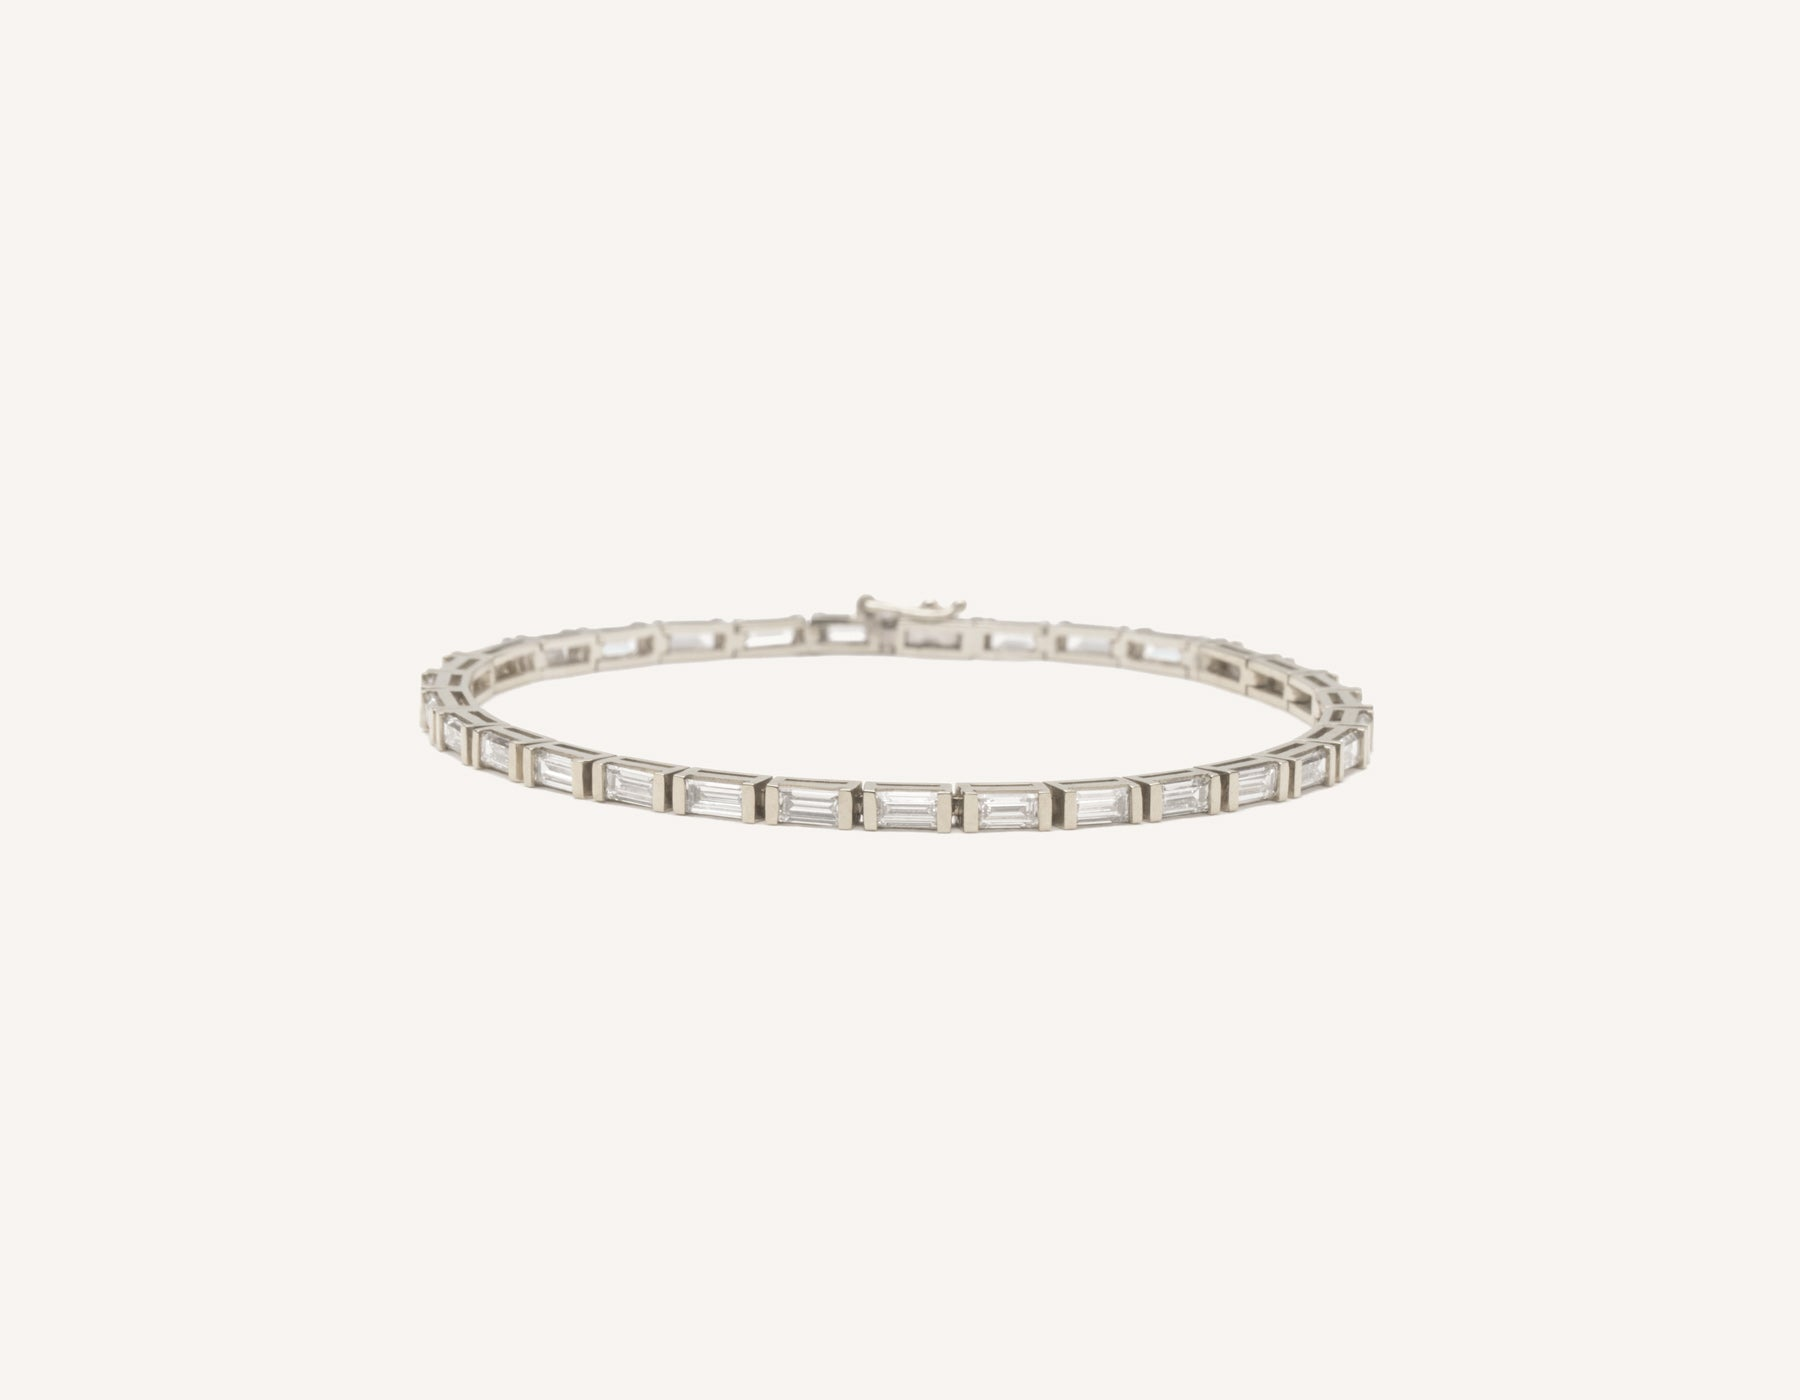 Classic elegant 18k solid gold Baguette Diamond Tennis Bracelet by Vrai and Oro, 18K White Gold